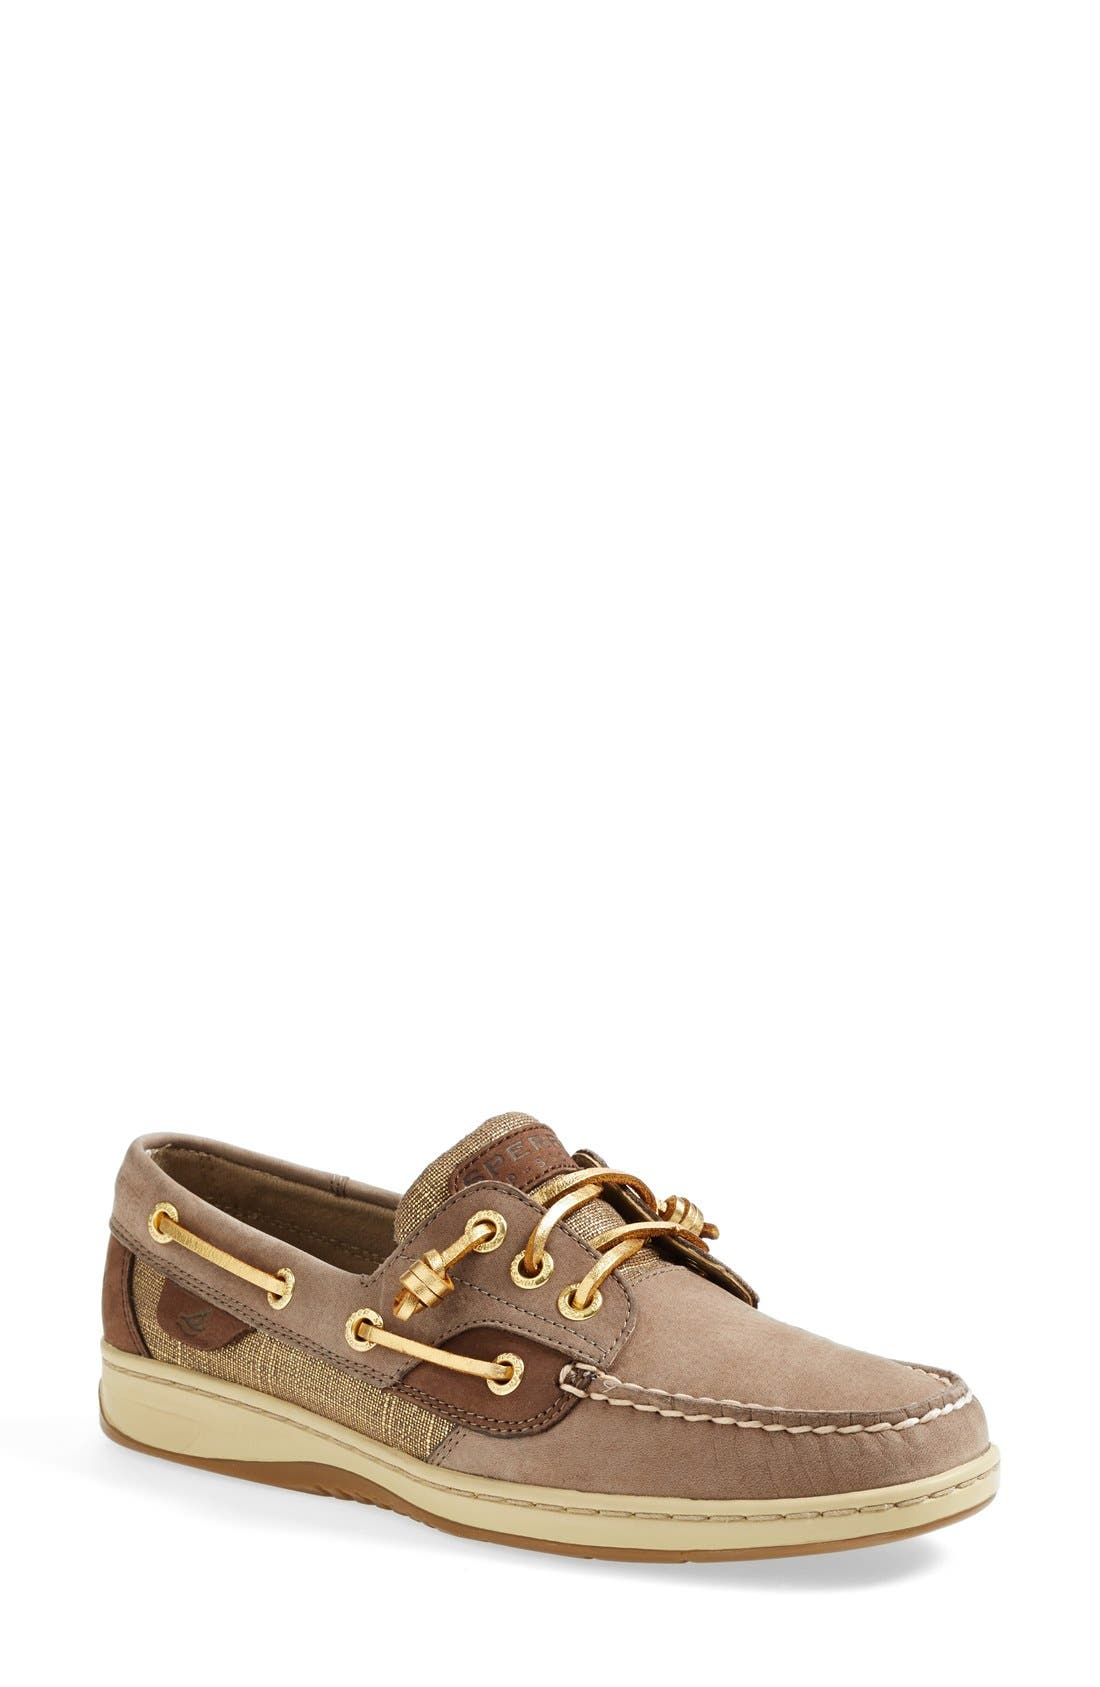 Main Image - Sperry Top-Sider® 'Ivyfish' Boat Shoe (Women)